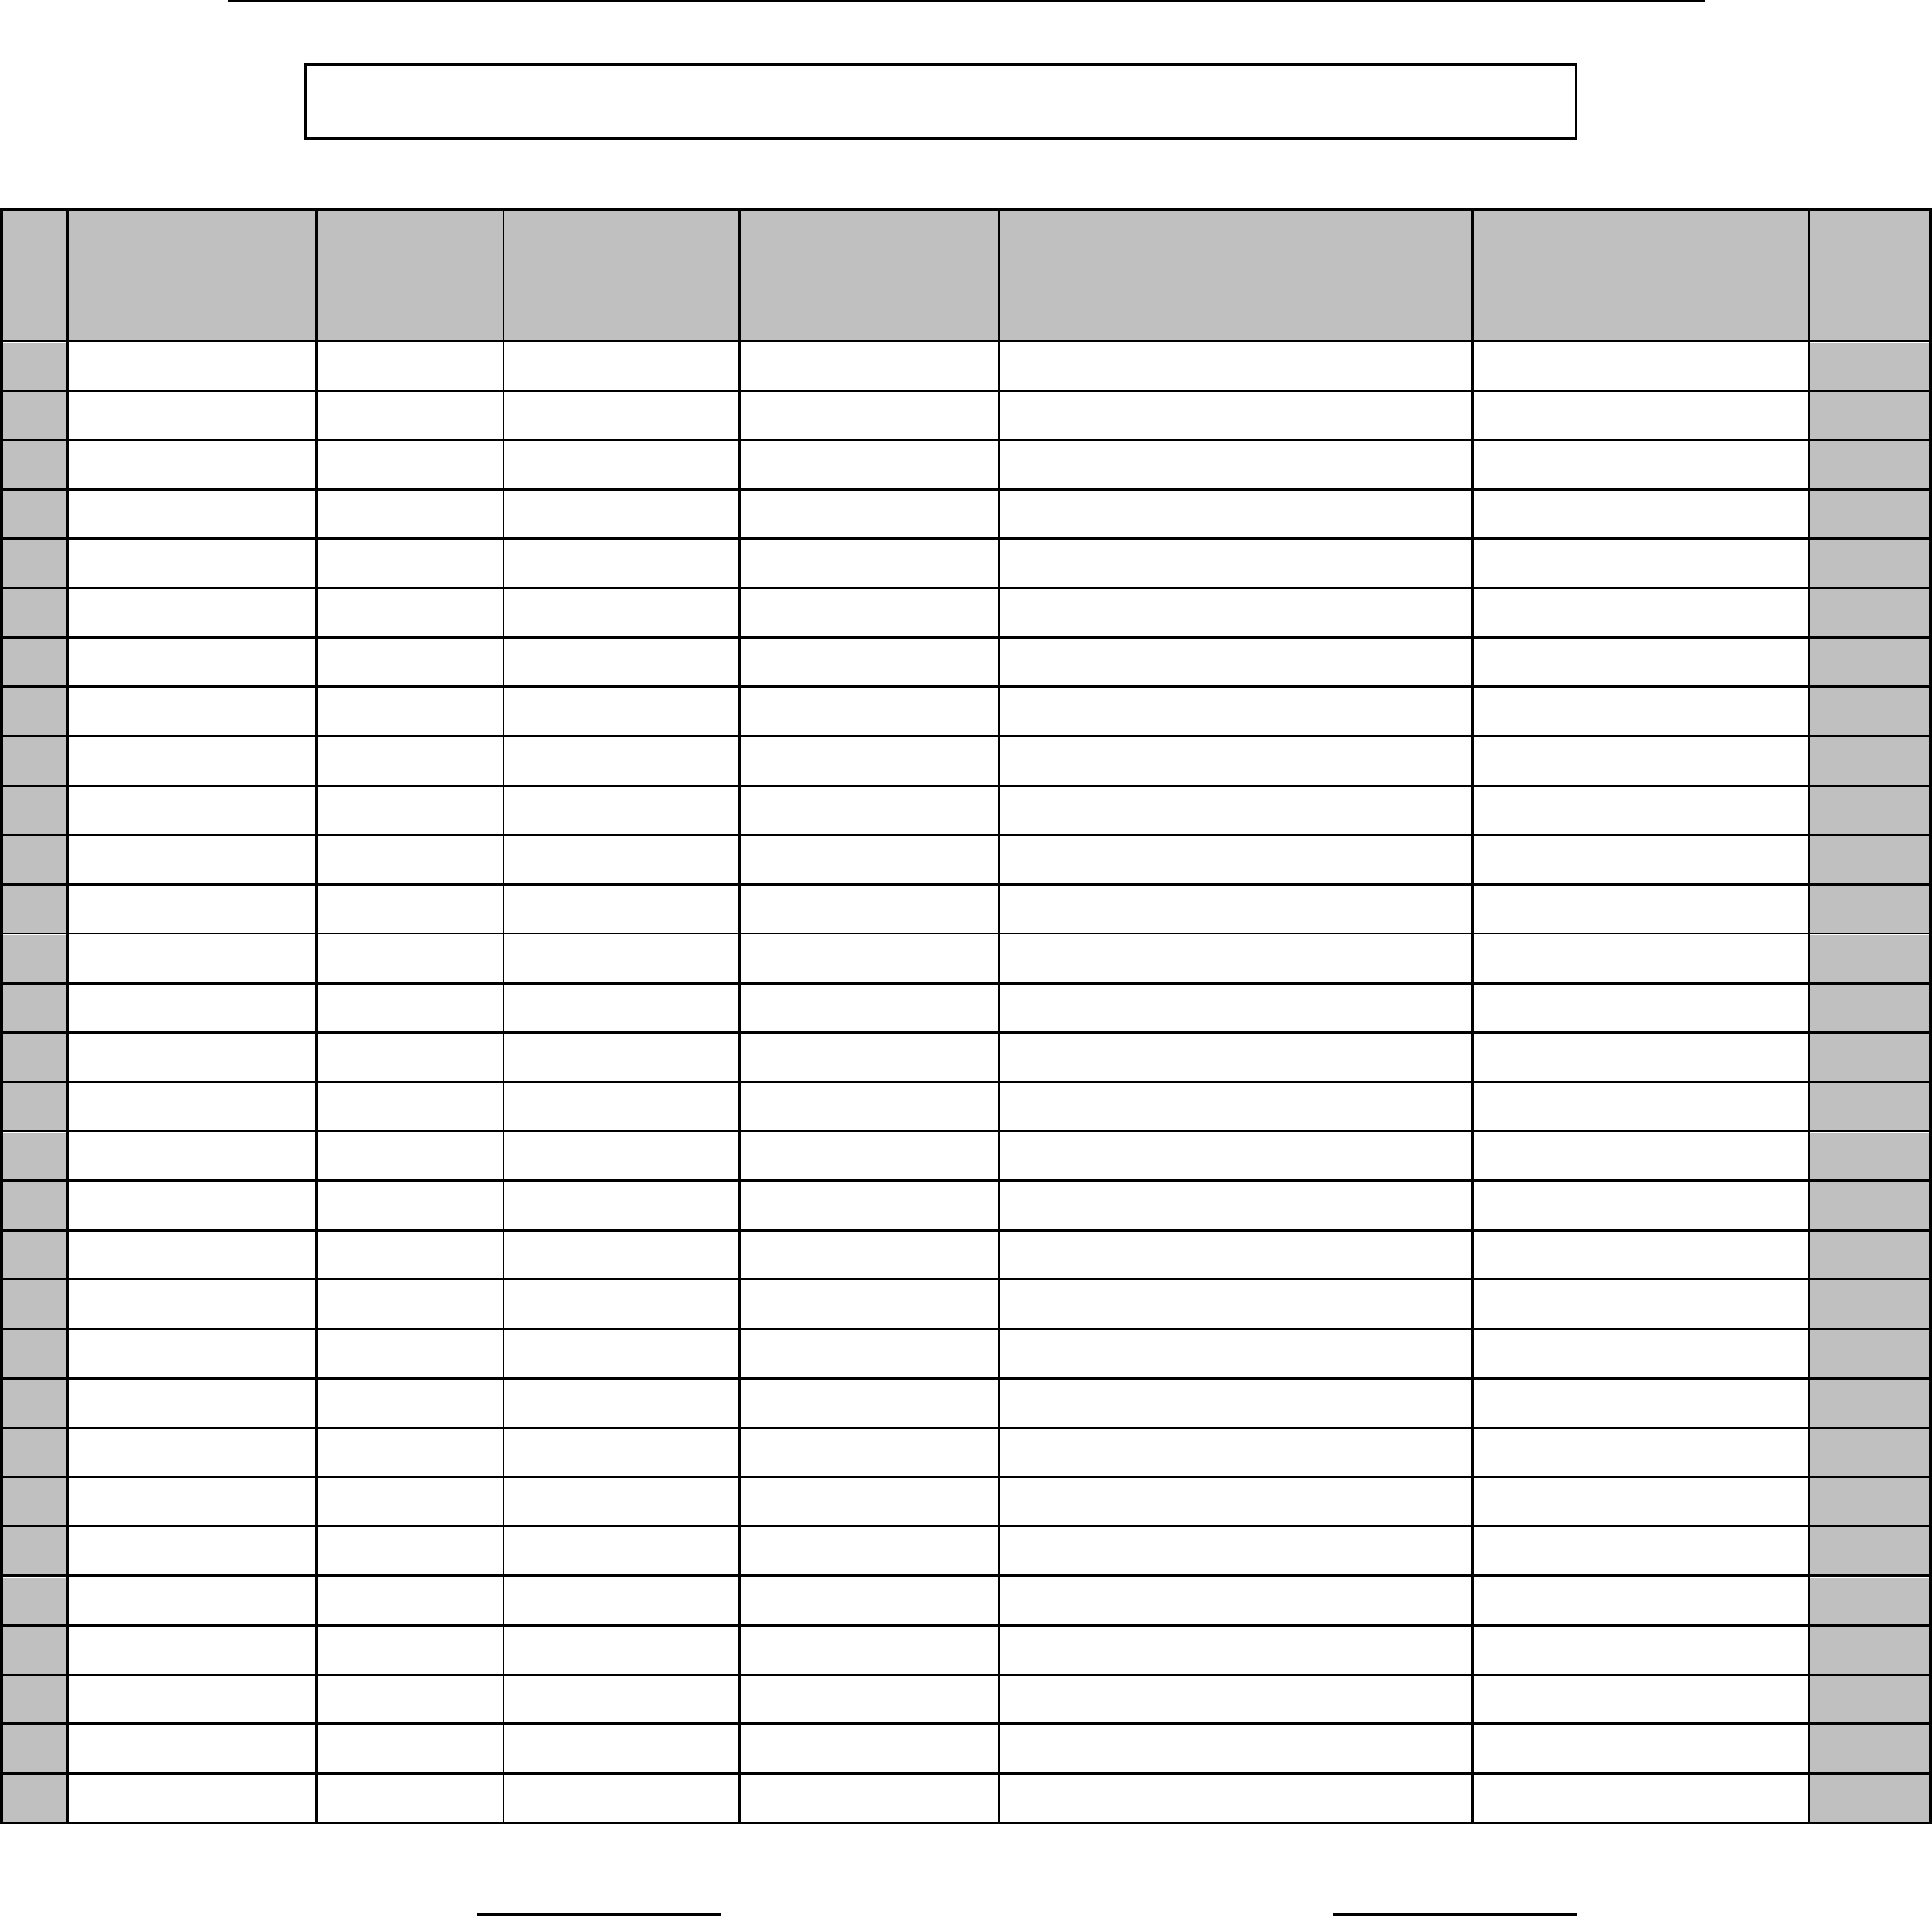 Blank club roster template free download for Army battle roster template